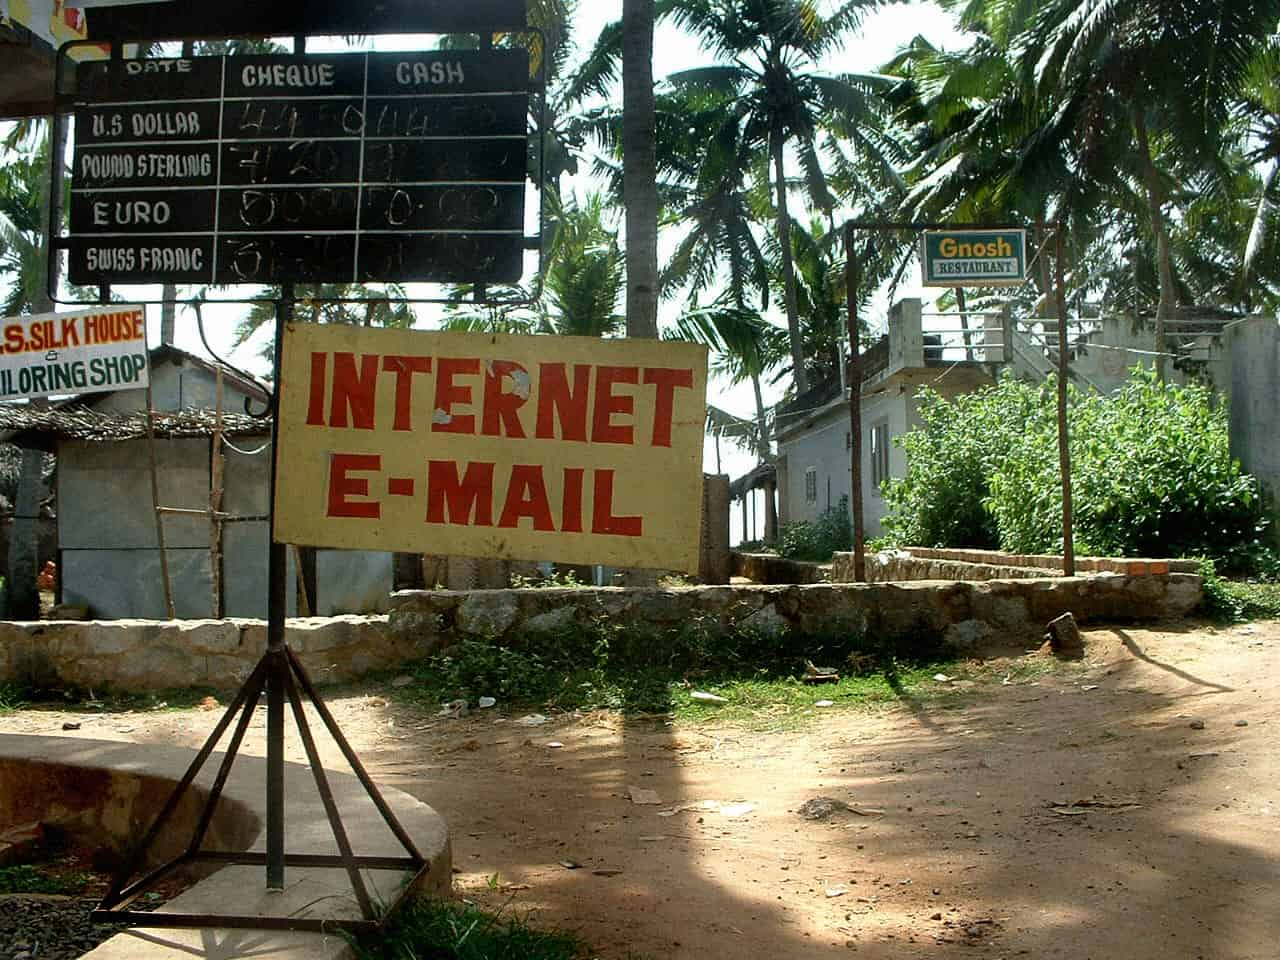 Internet Email Sign